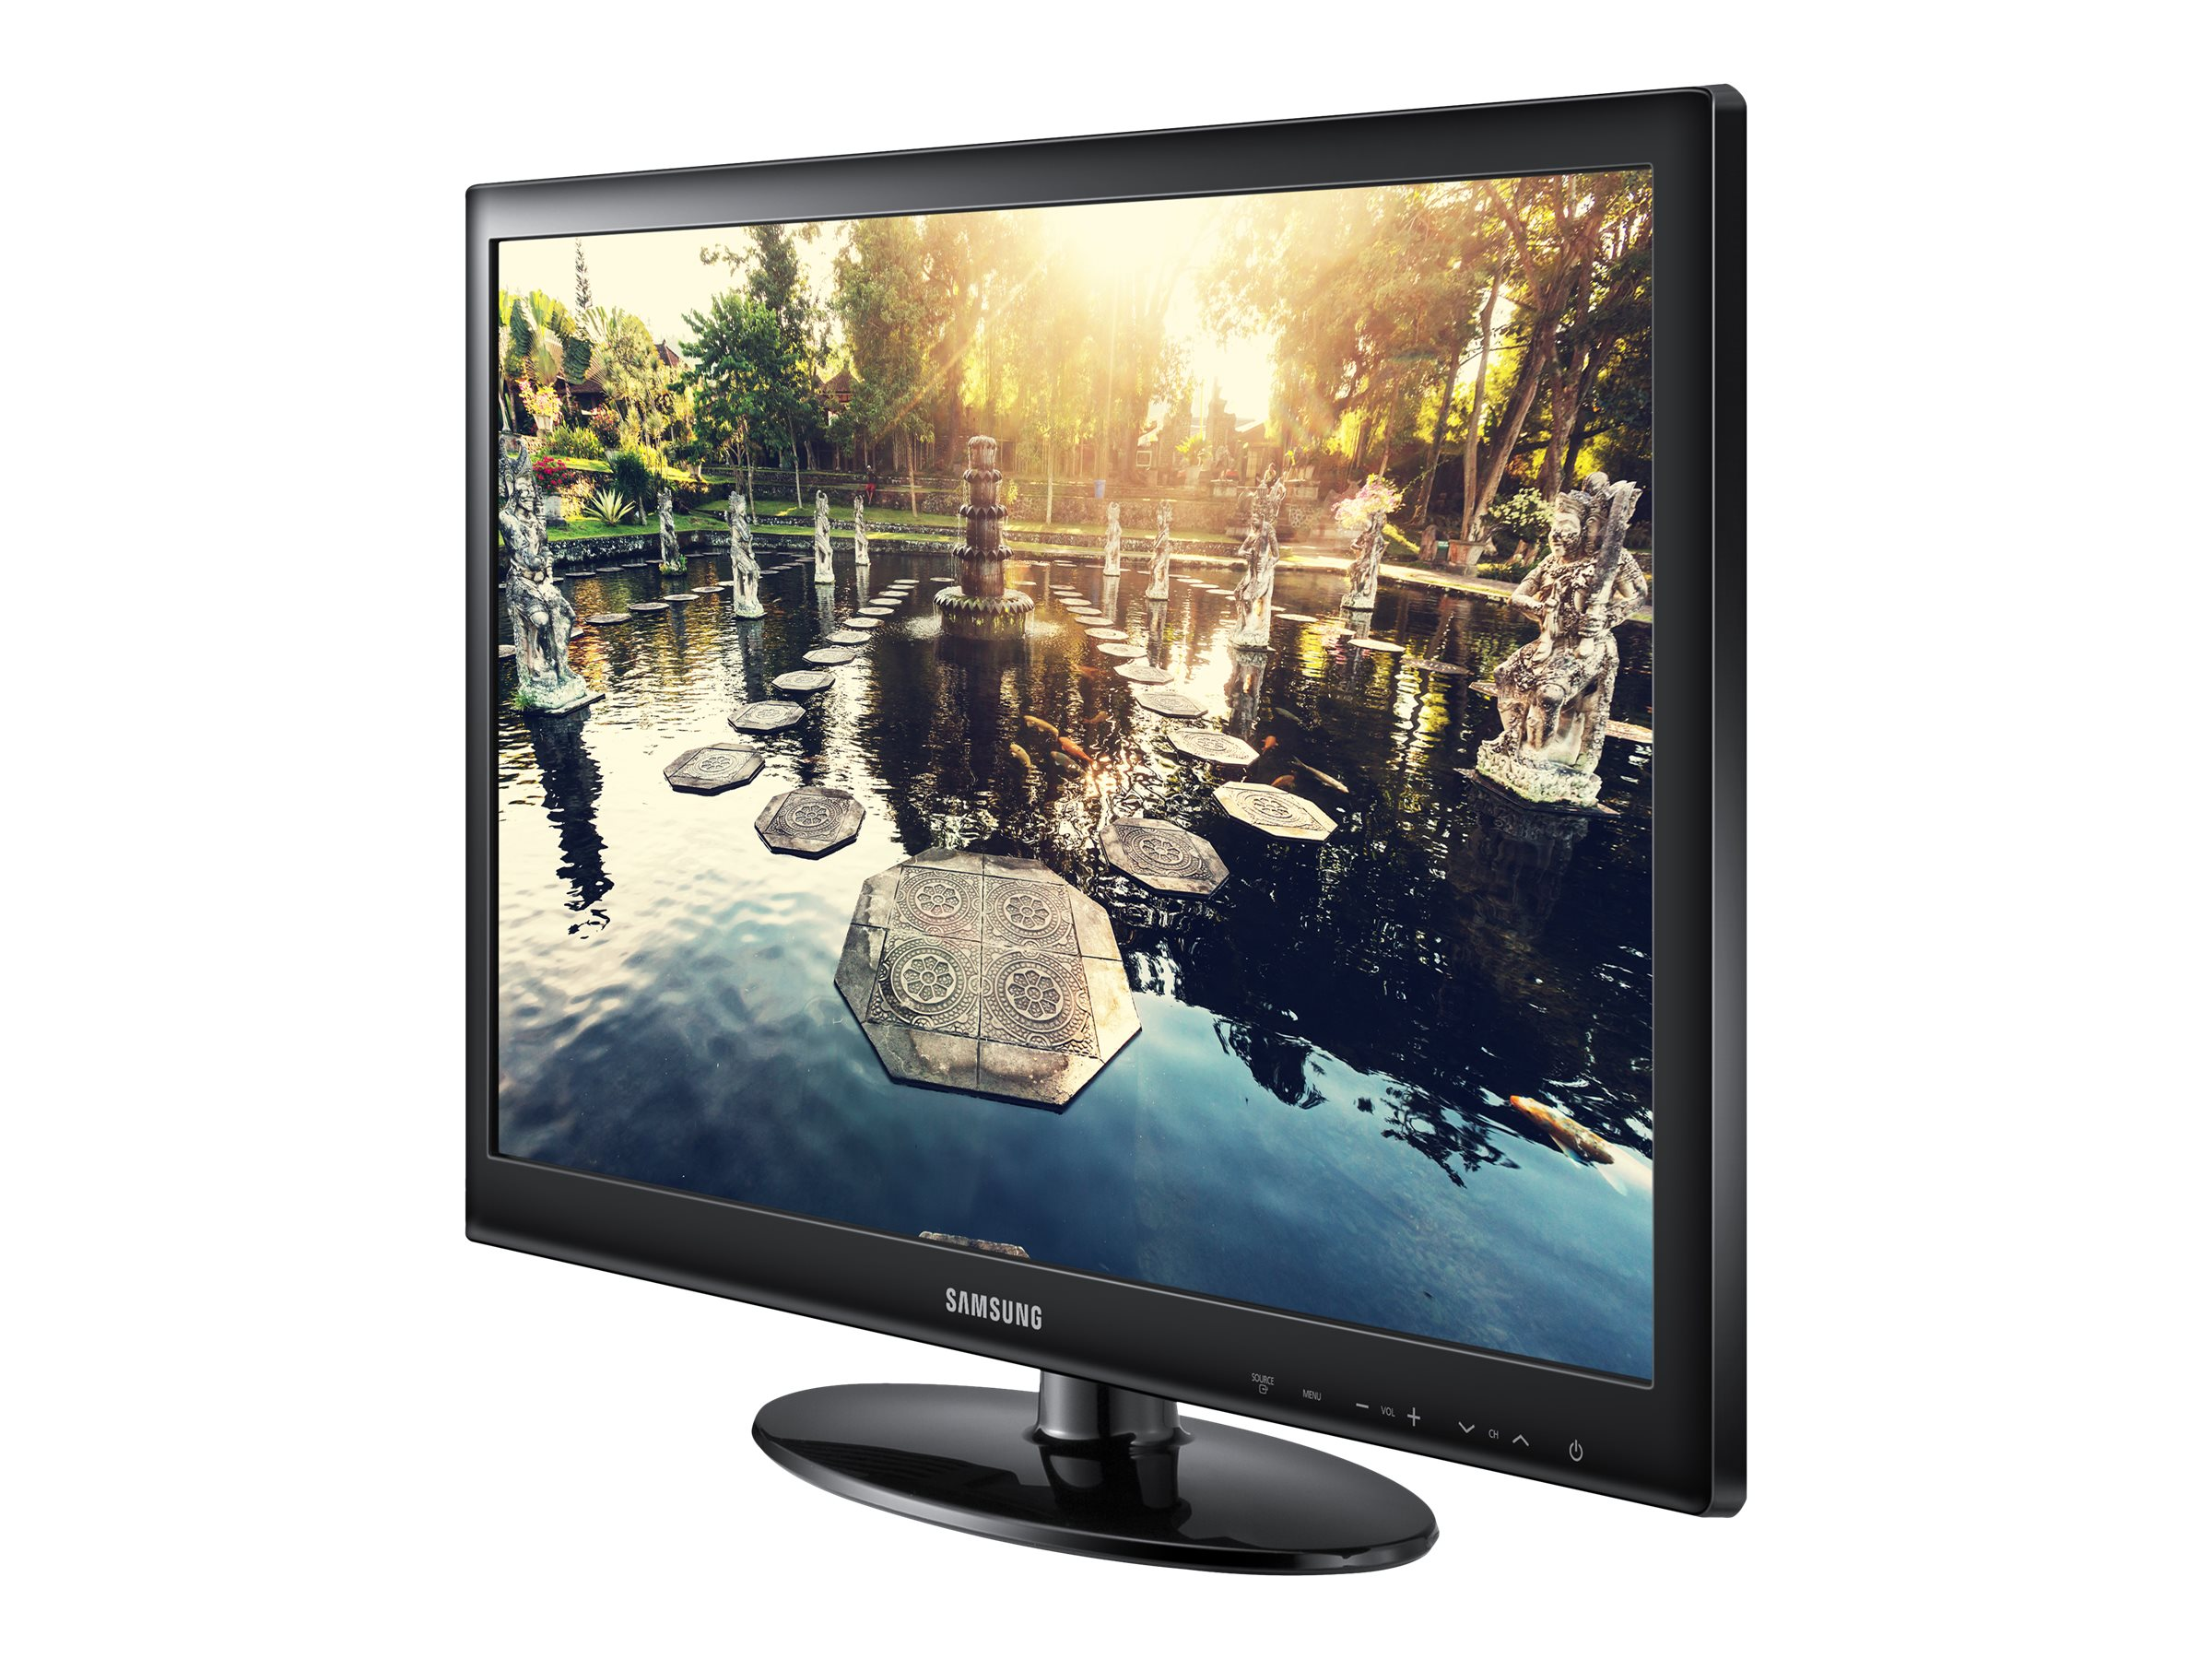 Samsung 22 HE690 Full HD LED-LCD Hospitality TV, Black, HG22NE690ZFXZA